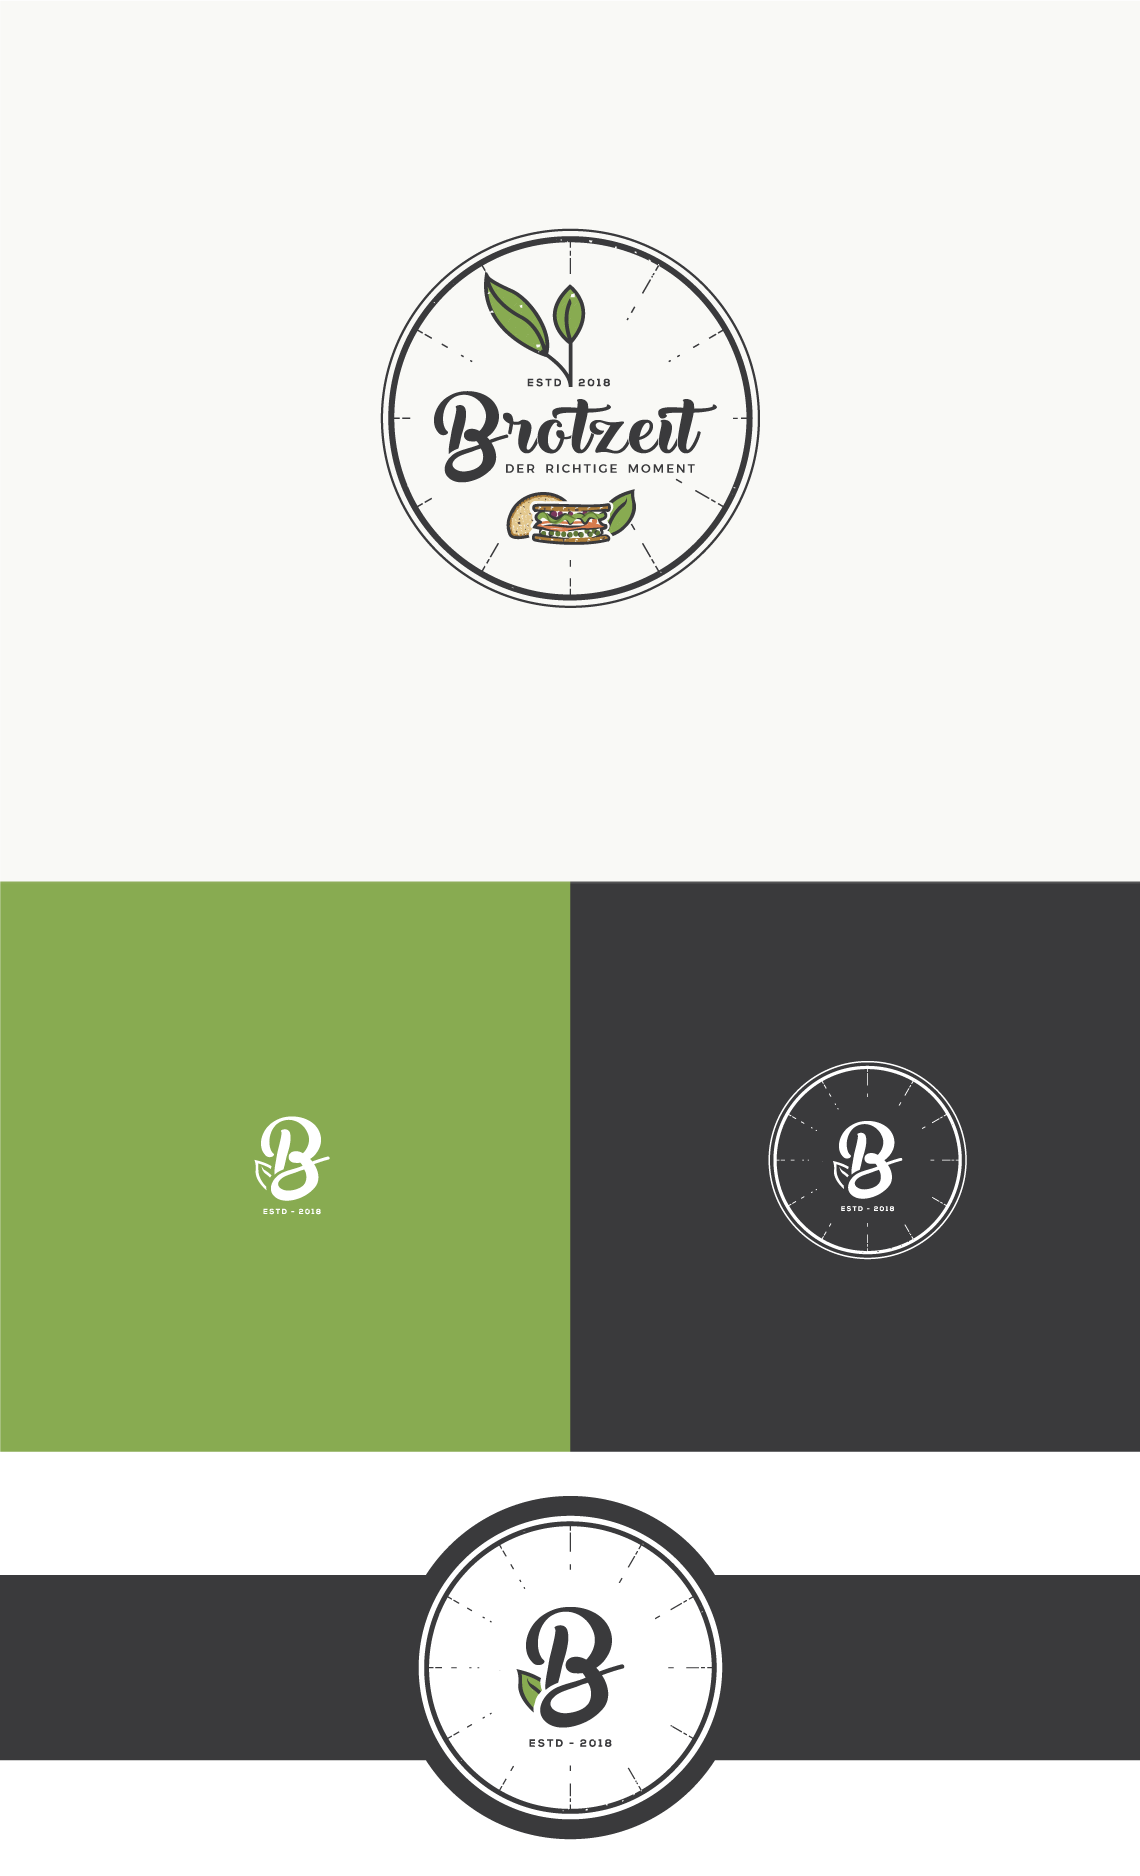 Create a logo and website for a healthy and tasty food concept offering sandwiches made from German bread